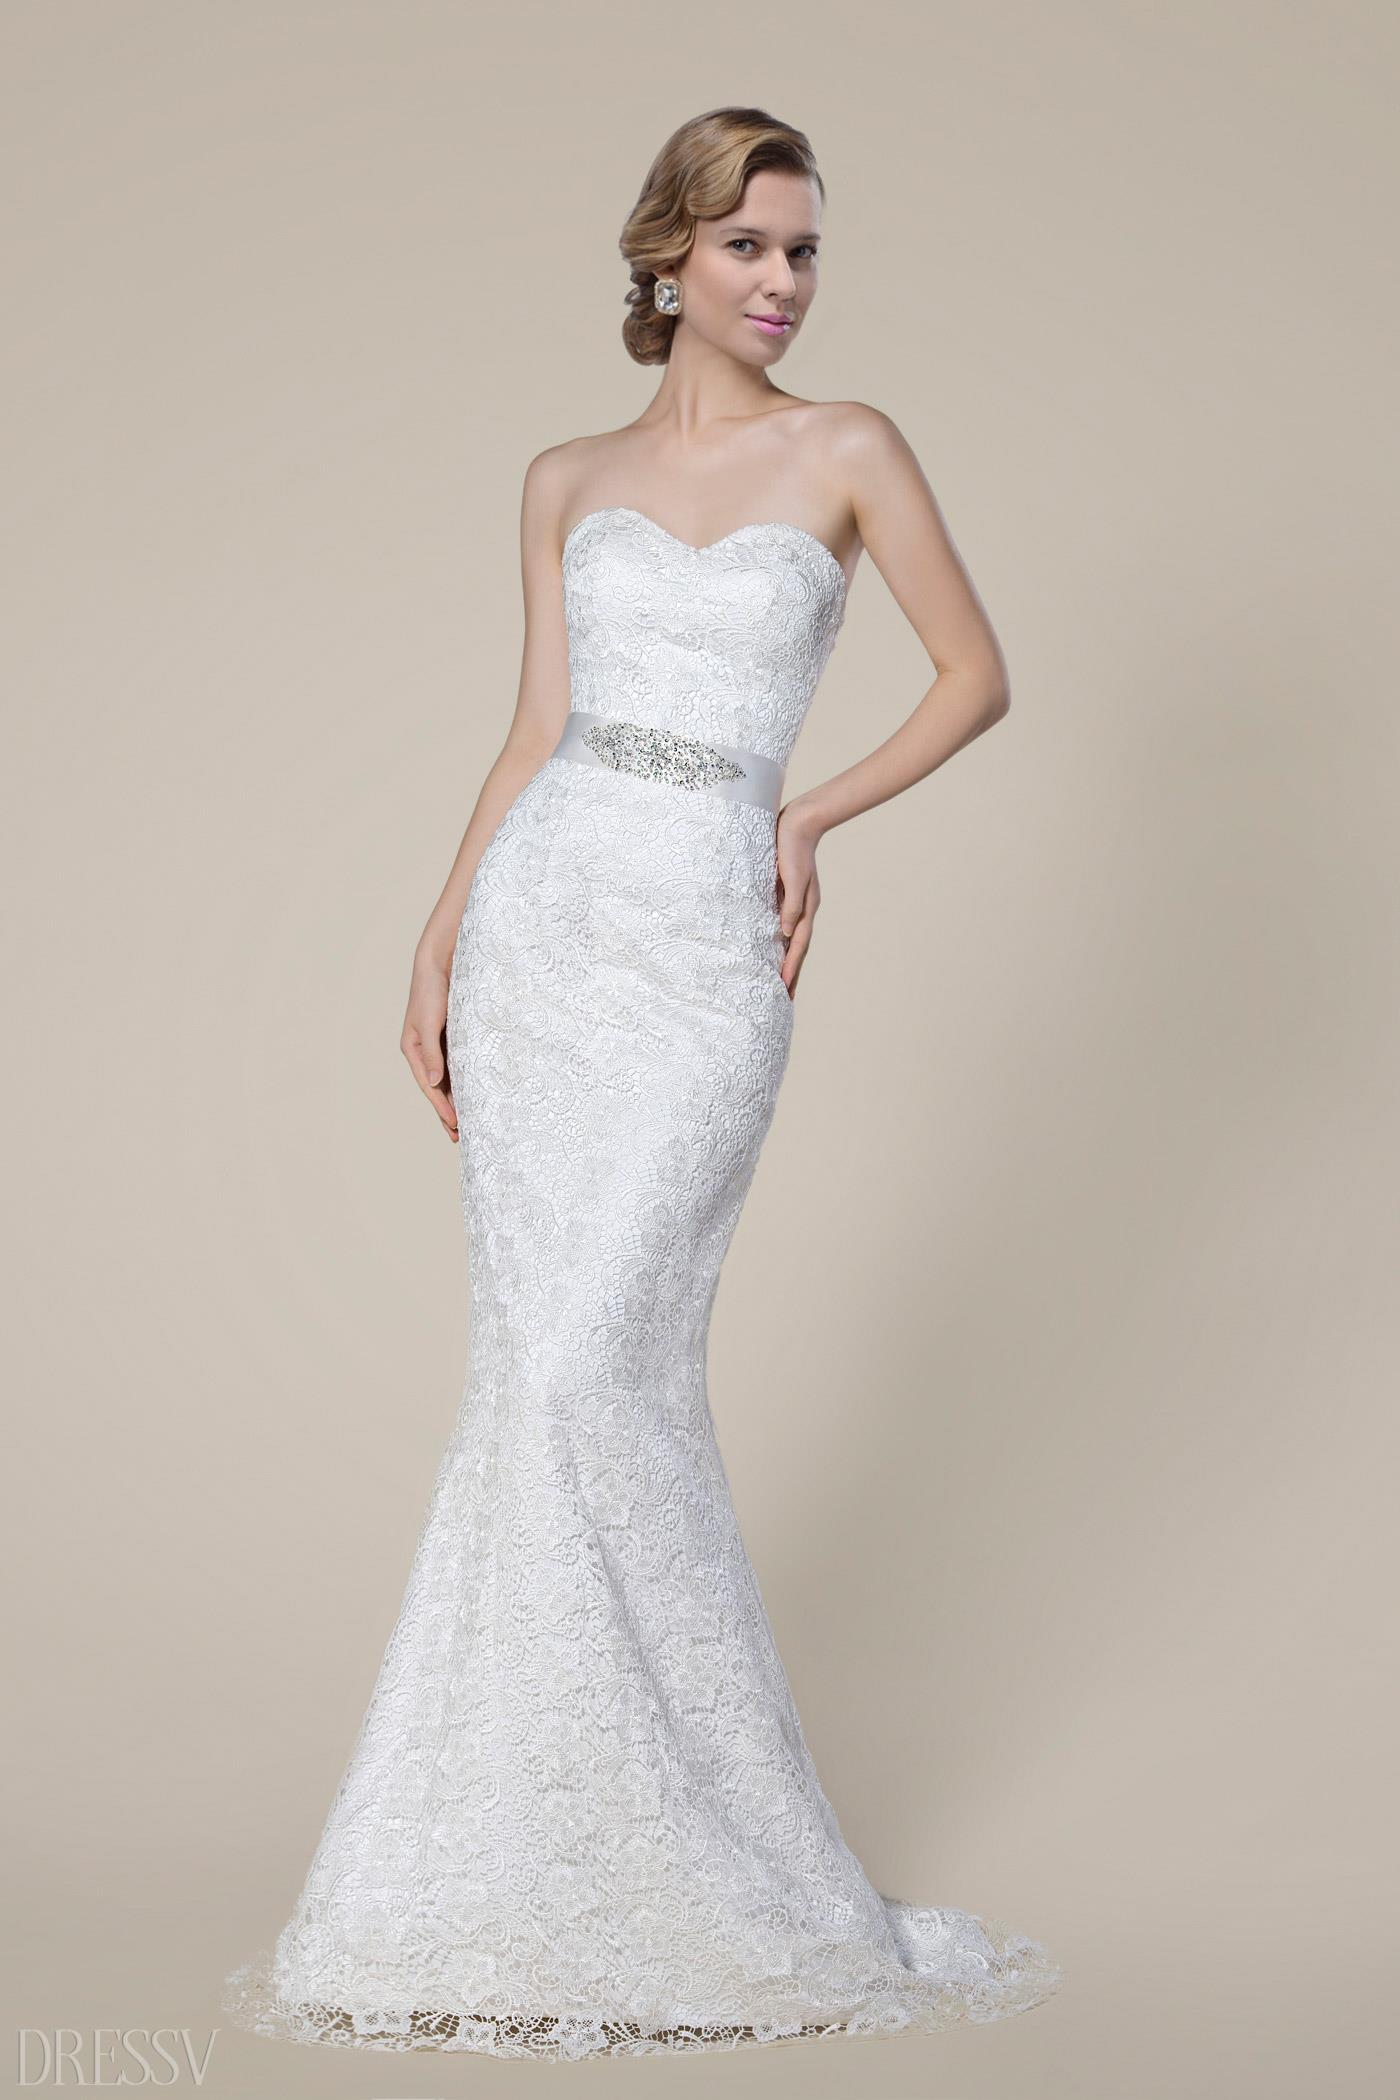 Are mermaid wedding dresses a trend fashion tag blog for Dress up wedding dresses